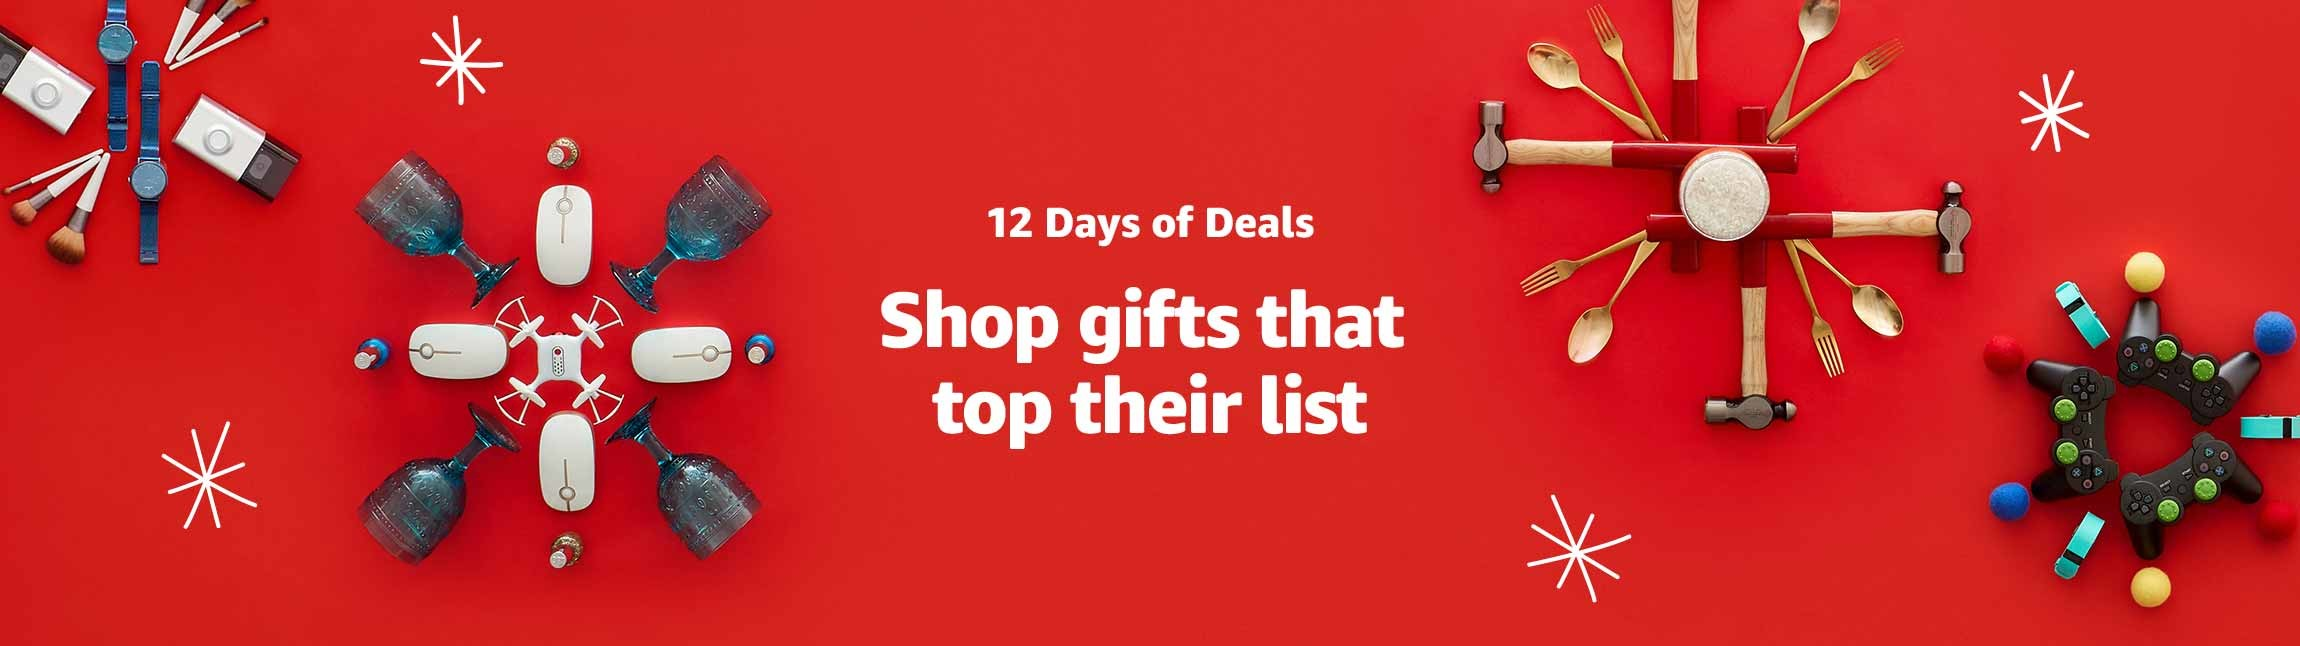 12 Days of Deals - Shop gifts that top their list | Christmas Gifts Idea